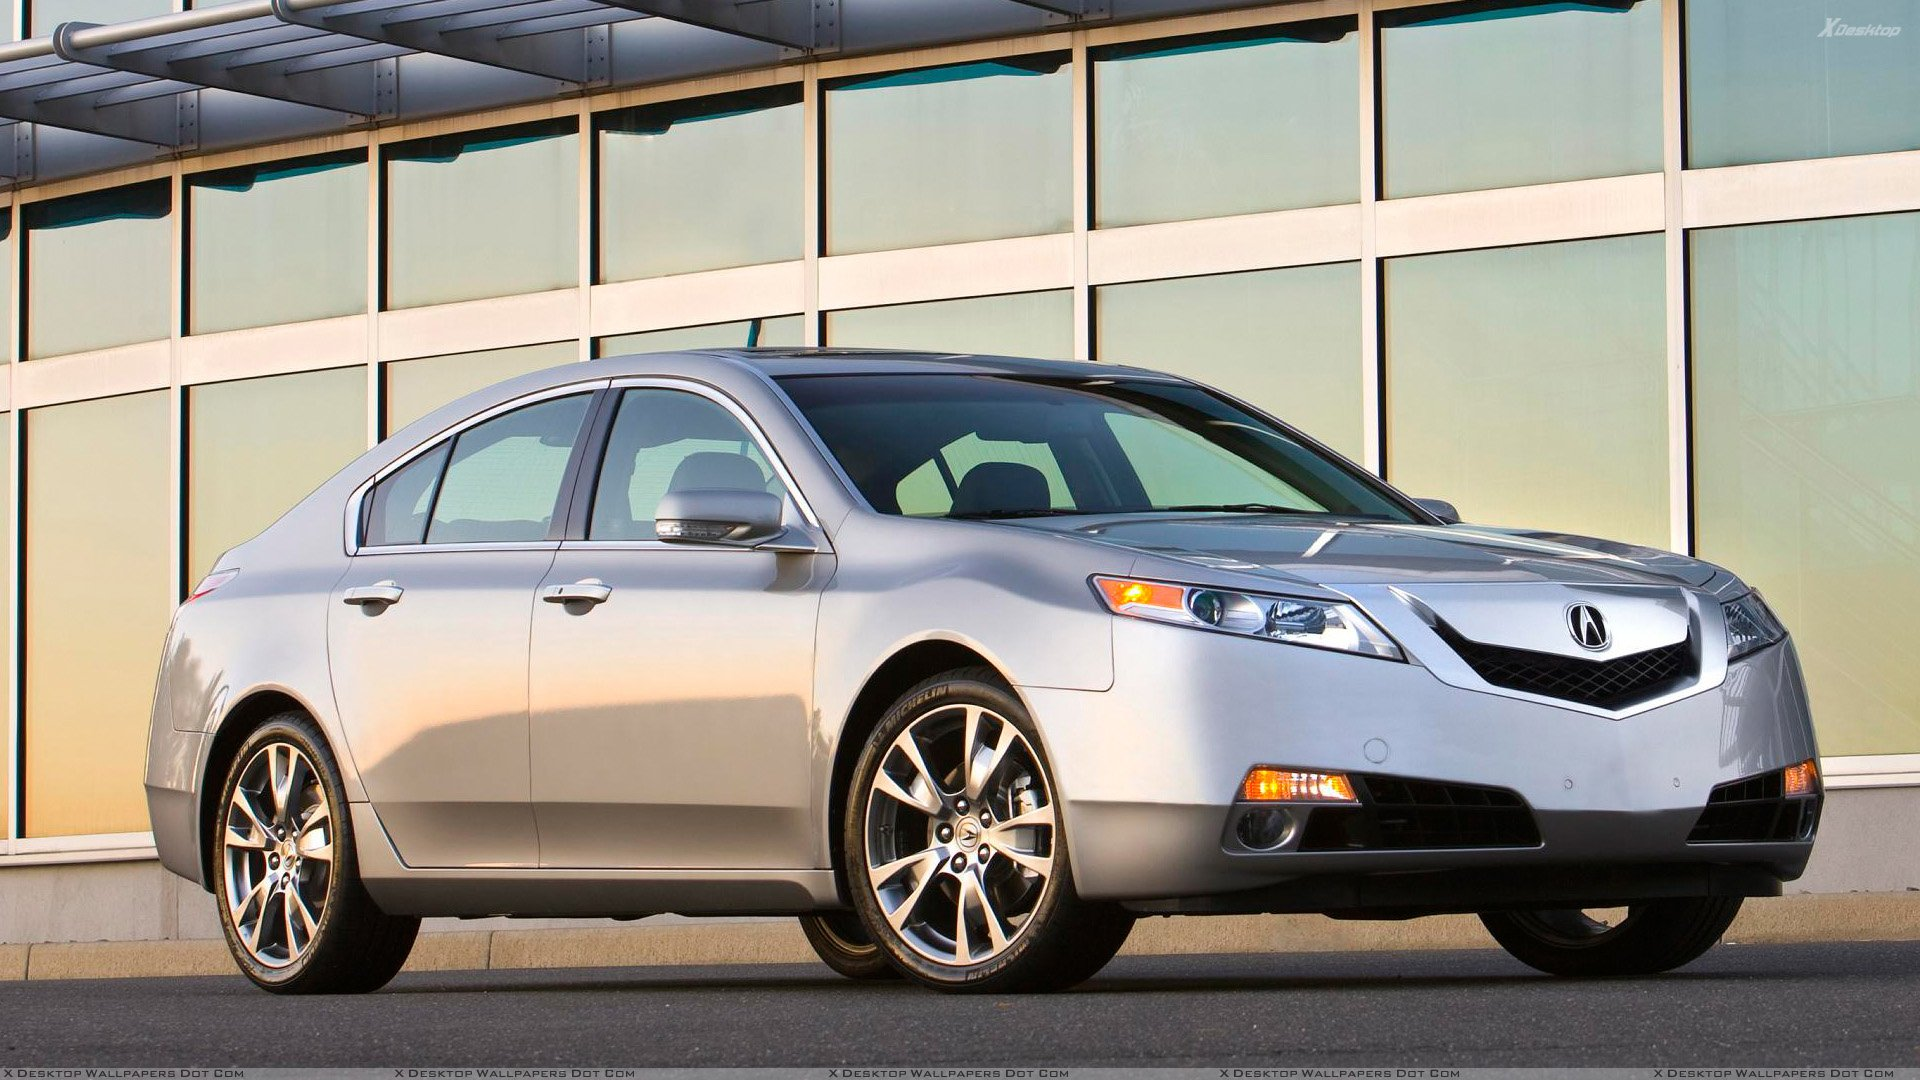 Acura TL Wallpapers Photos Images in HD 1920x1080